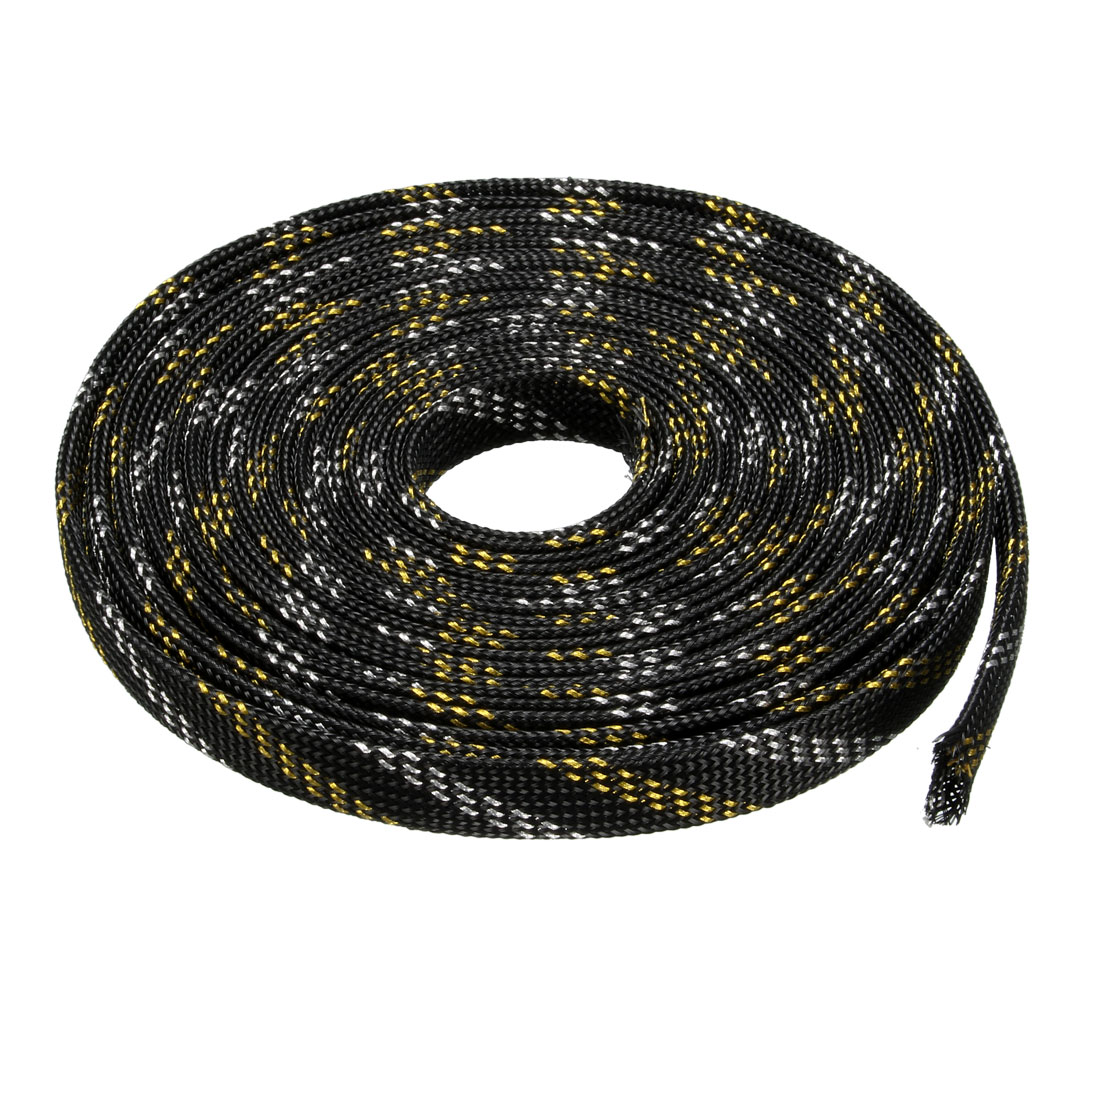 16mm PET Cable Wire Wrap Expandable Braided Sleeving Black Golden 5M Length